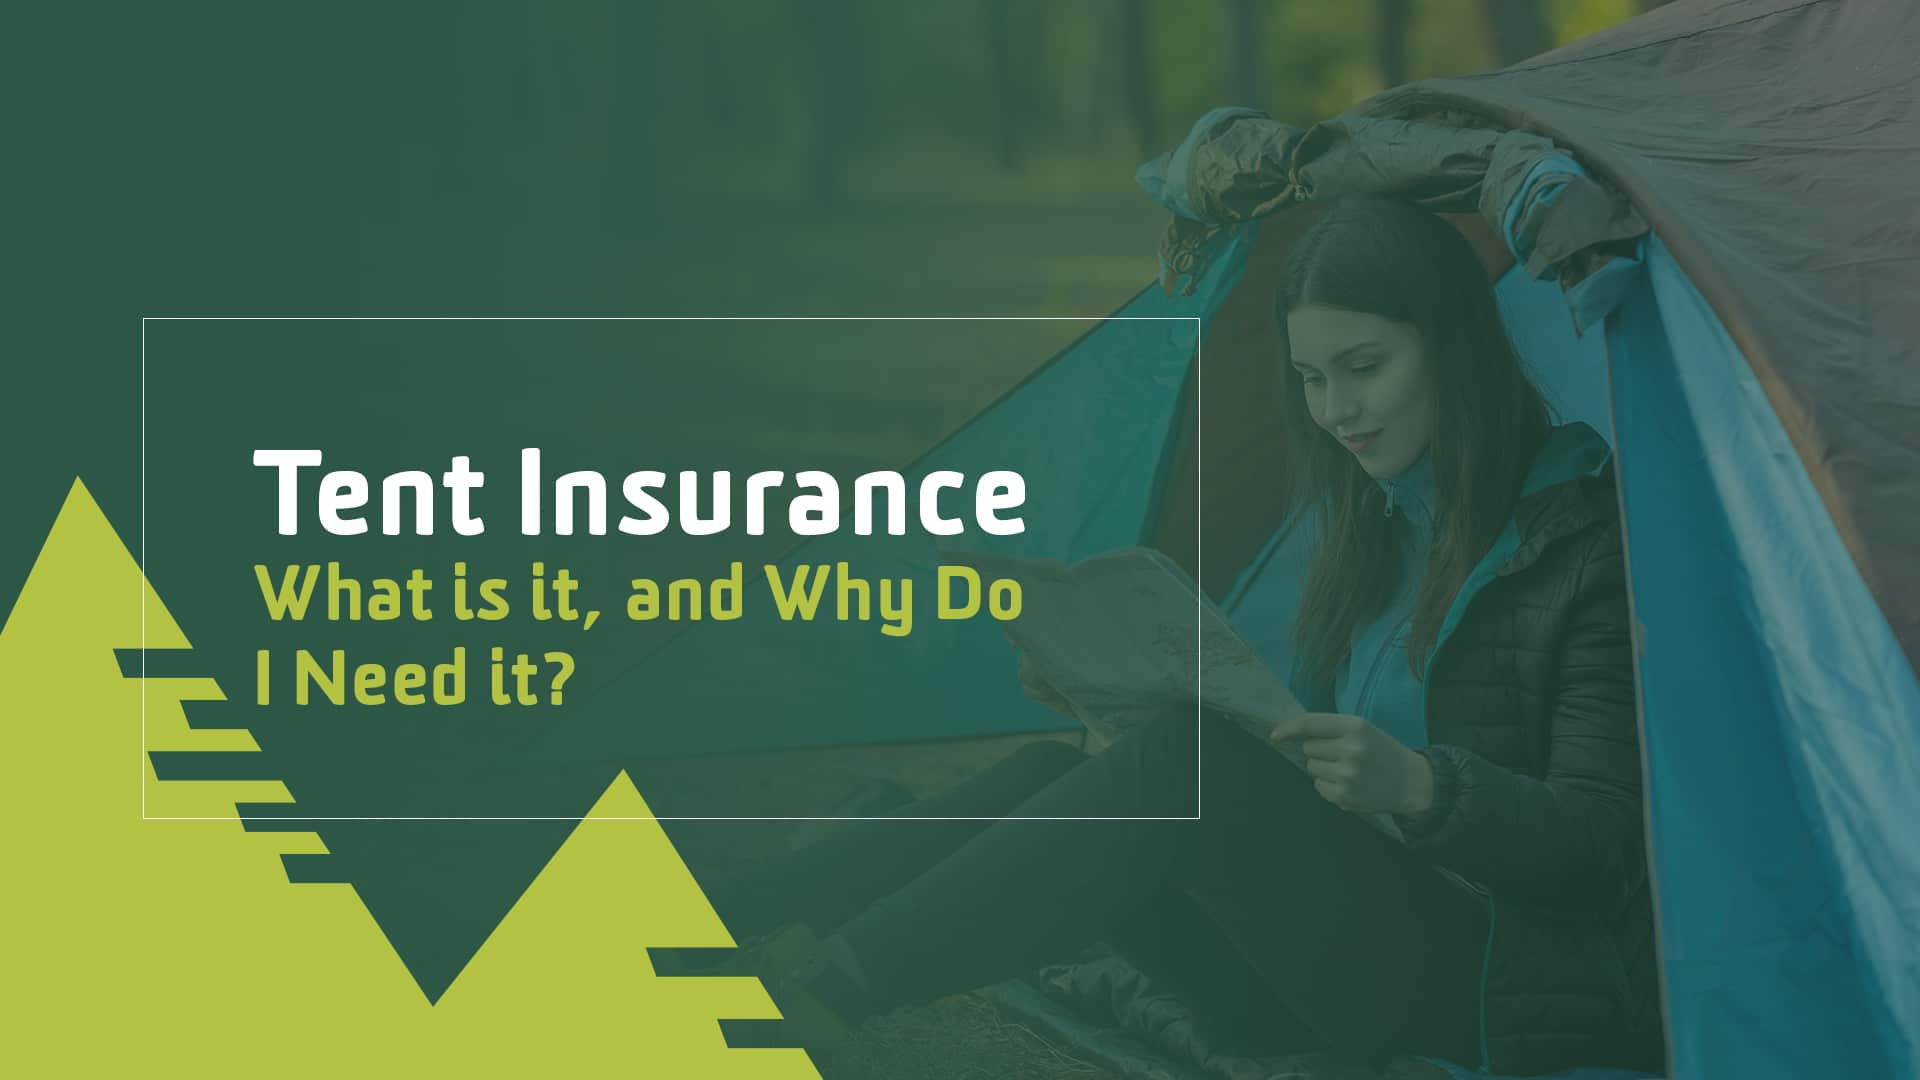 Tent Insurance – What is it, and Why Do I Need it?